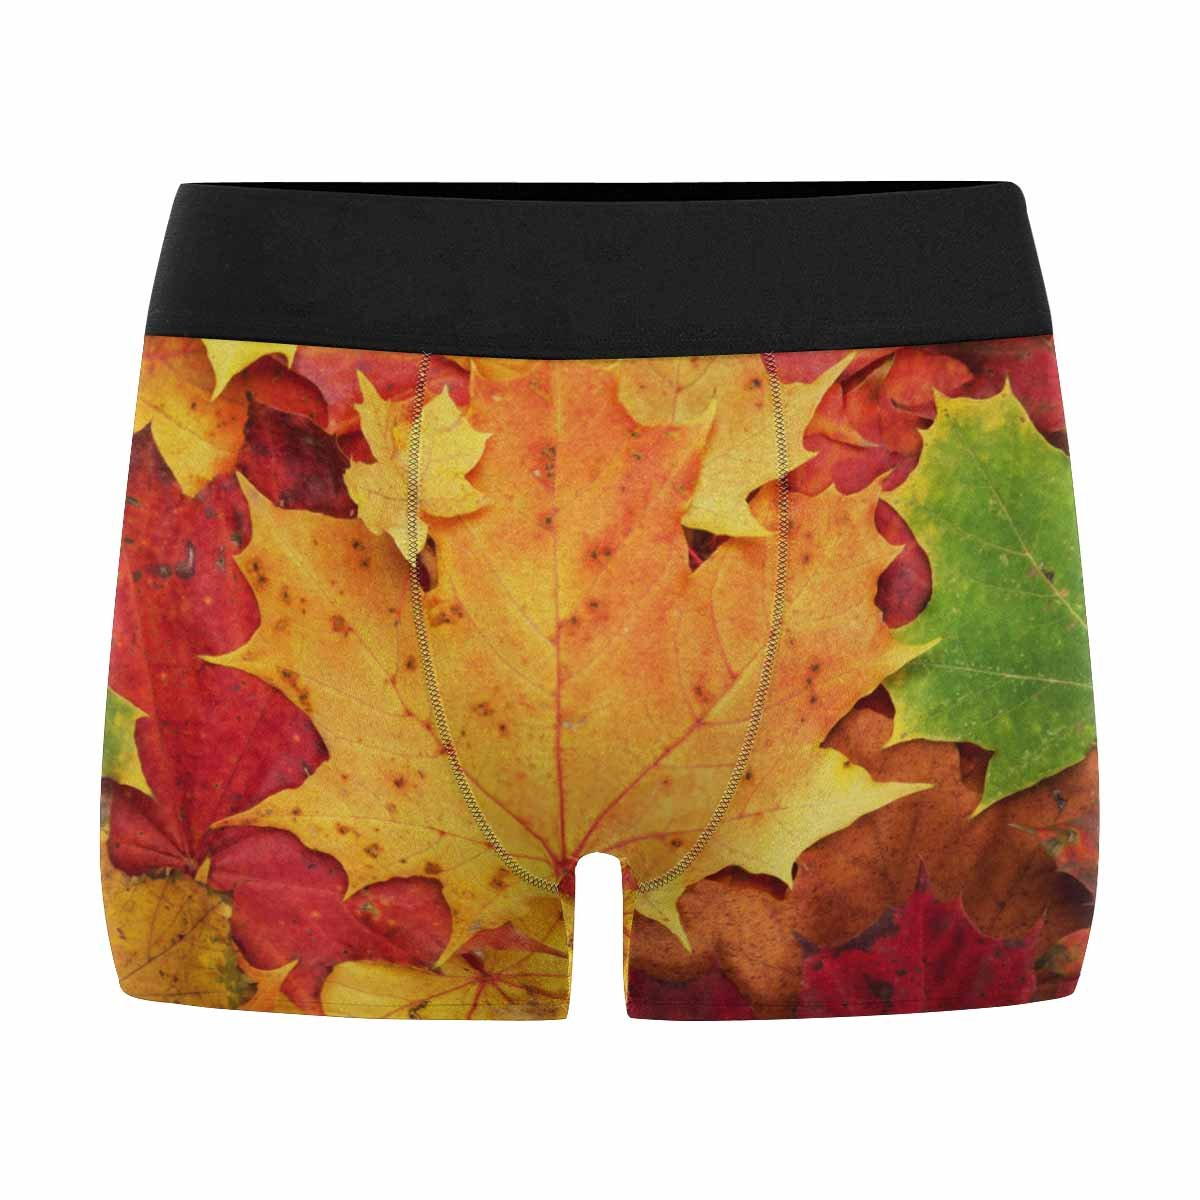 INTERESTPRINT Mens All-Over Print Boxer Briefs Maple Leaves XS-3XL